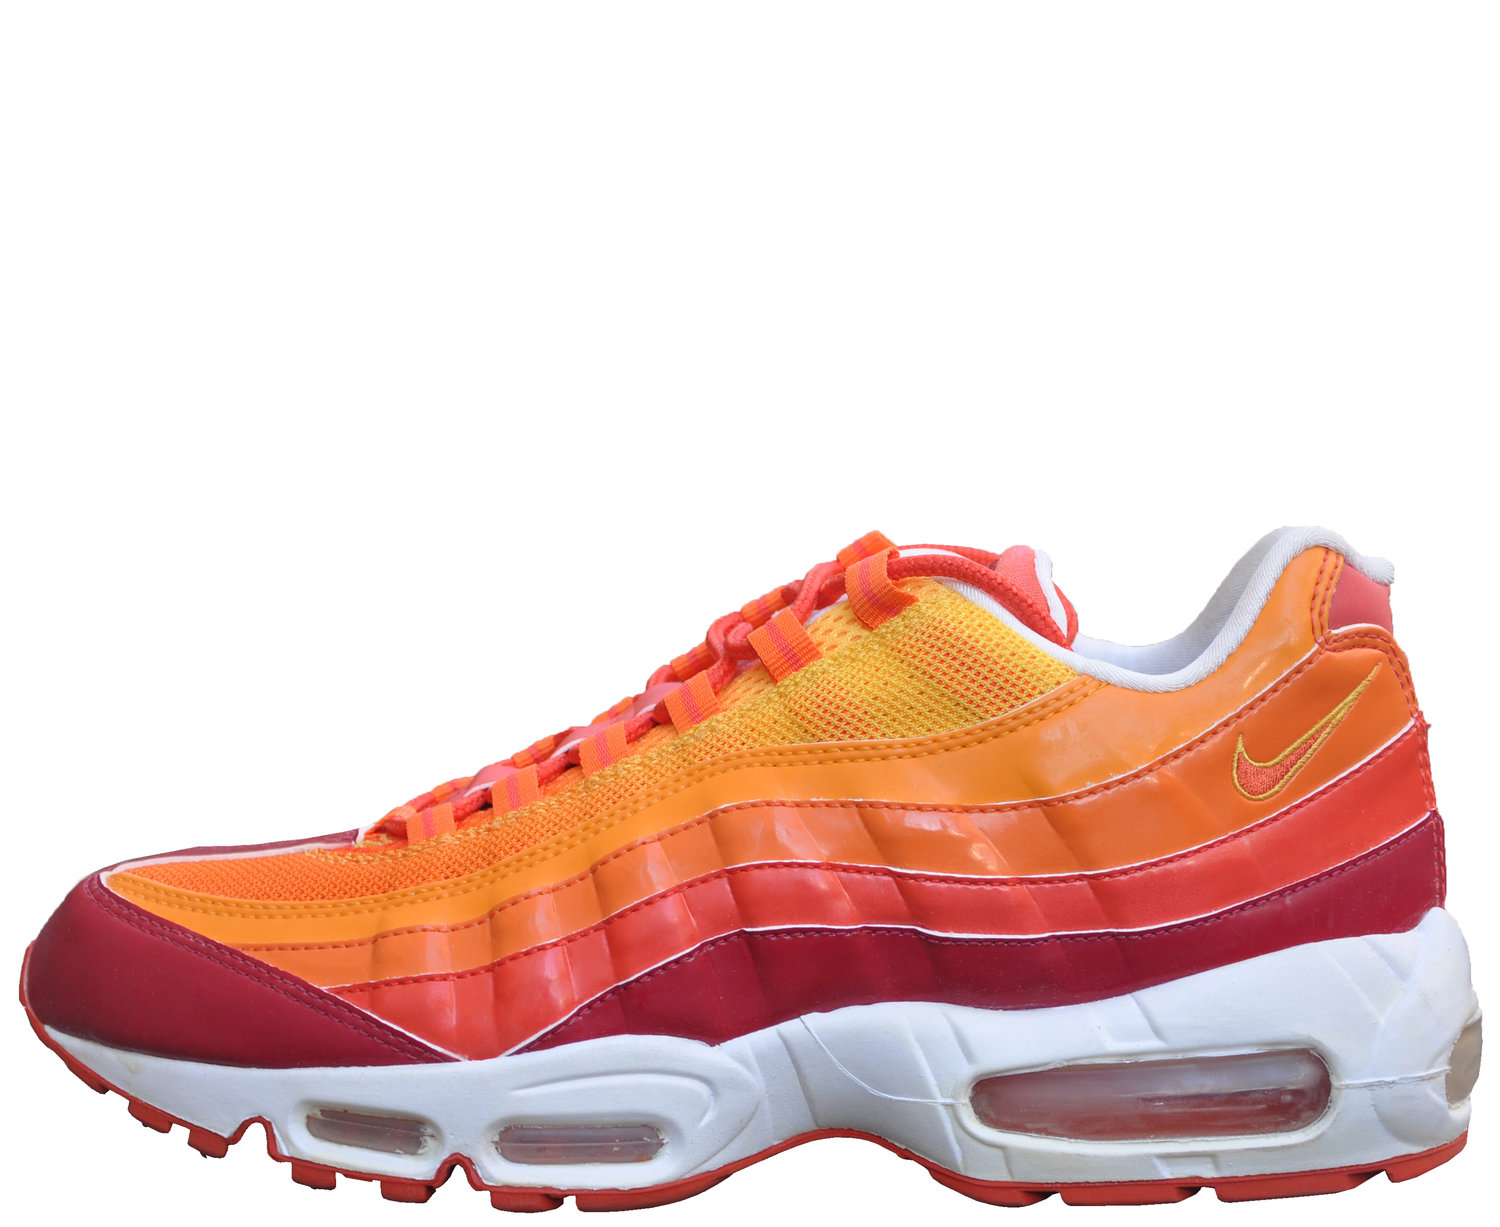 buy online 2a18d 039ac Nike Air Max 95 Red   Orange Blaze